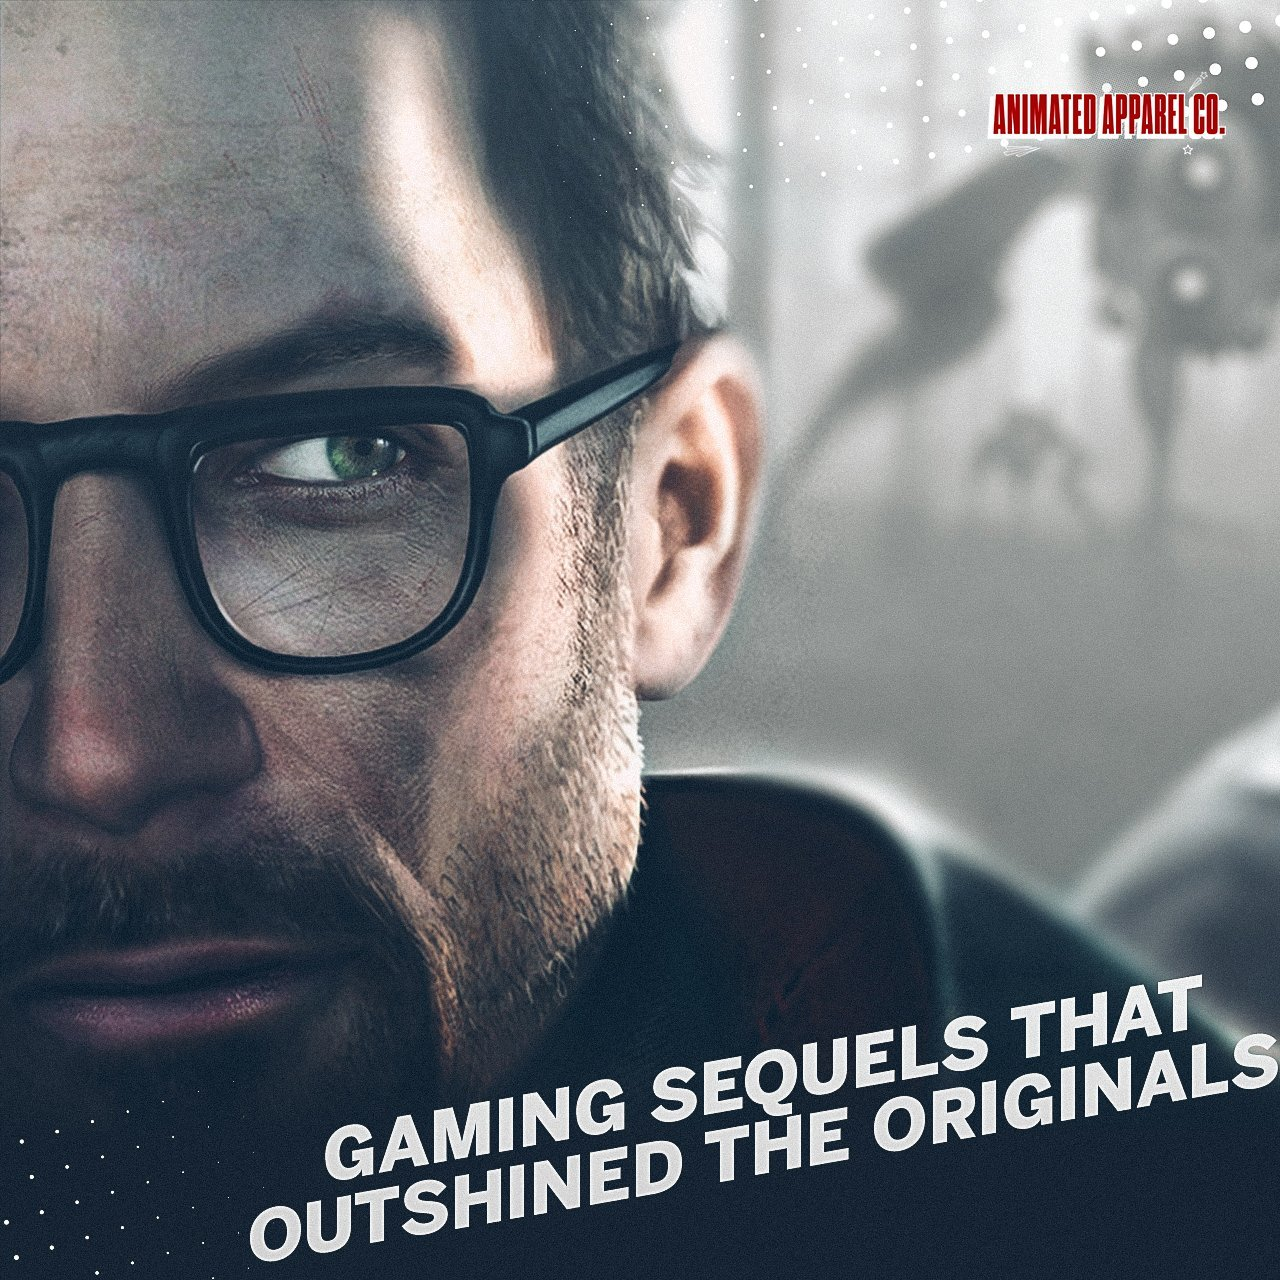 Gaming Sequels That Outshined The Originals